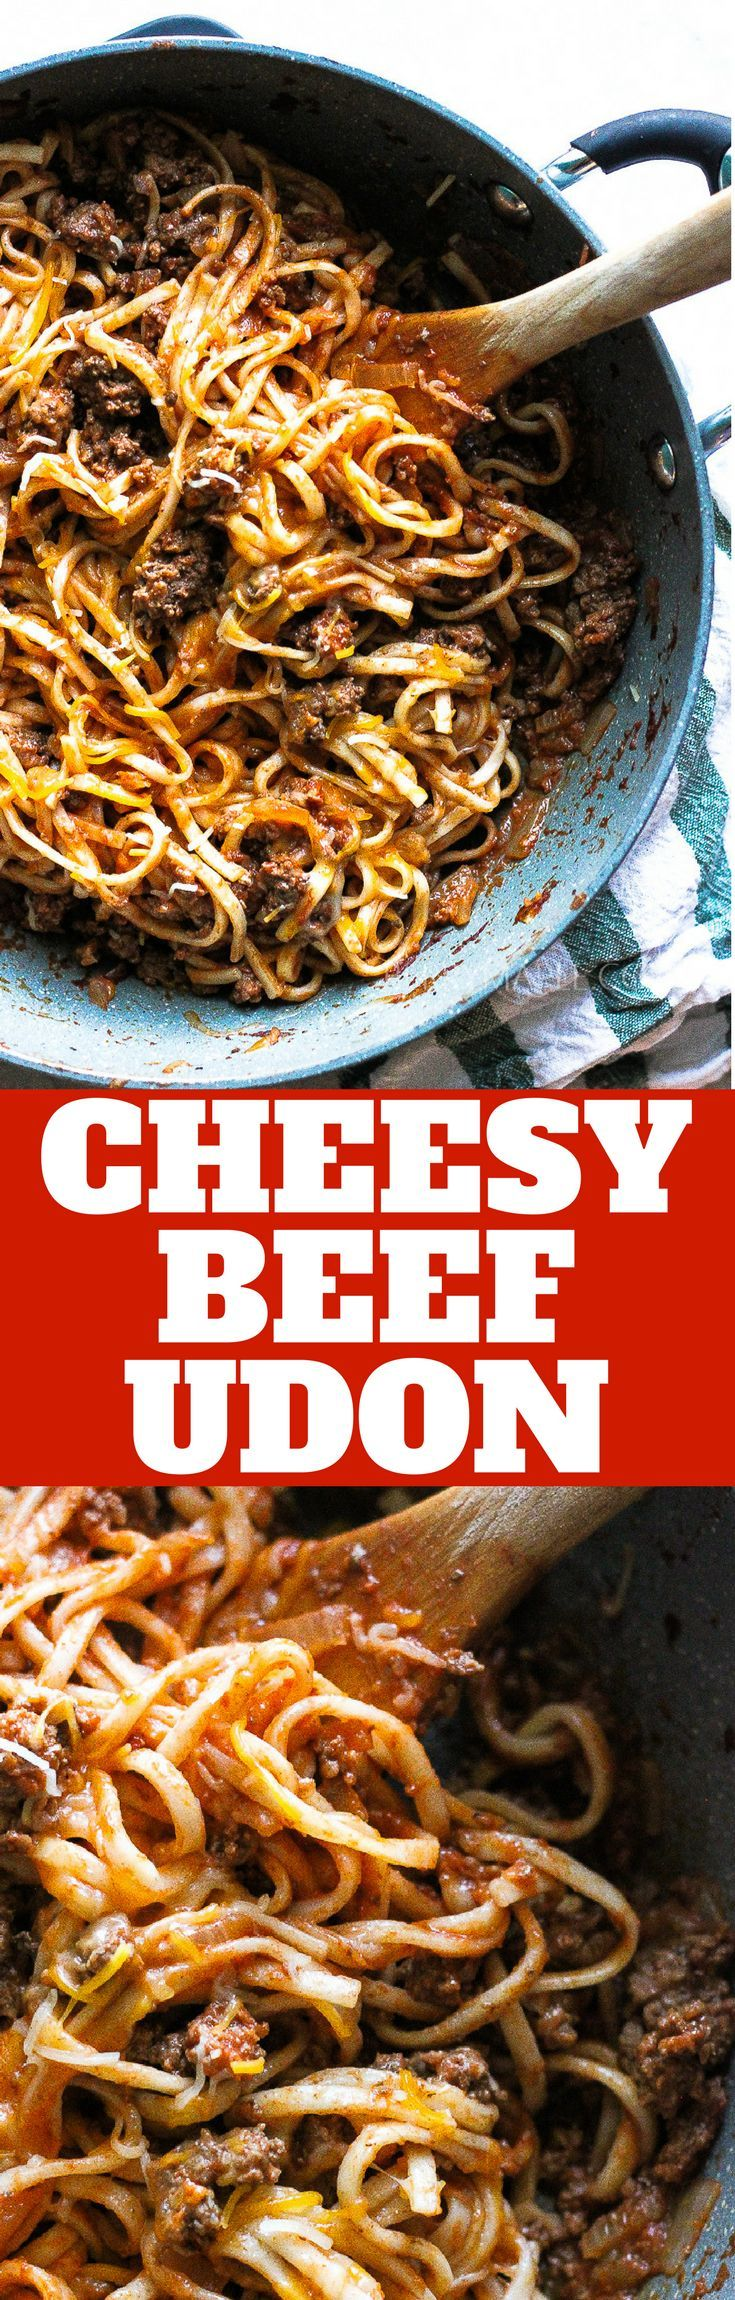 CHEESY BEEF UDON PASTA NOODLES. Easy flavorful  weeknight meal for you and your family- try this cheesy beef udon noodles on a busy weekday night! #udon #pasta #noodles #beef #groundbeef #easyrecipe #cheese #dinner #lunch #weekend #brunch